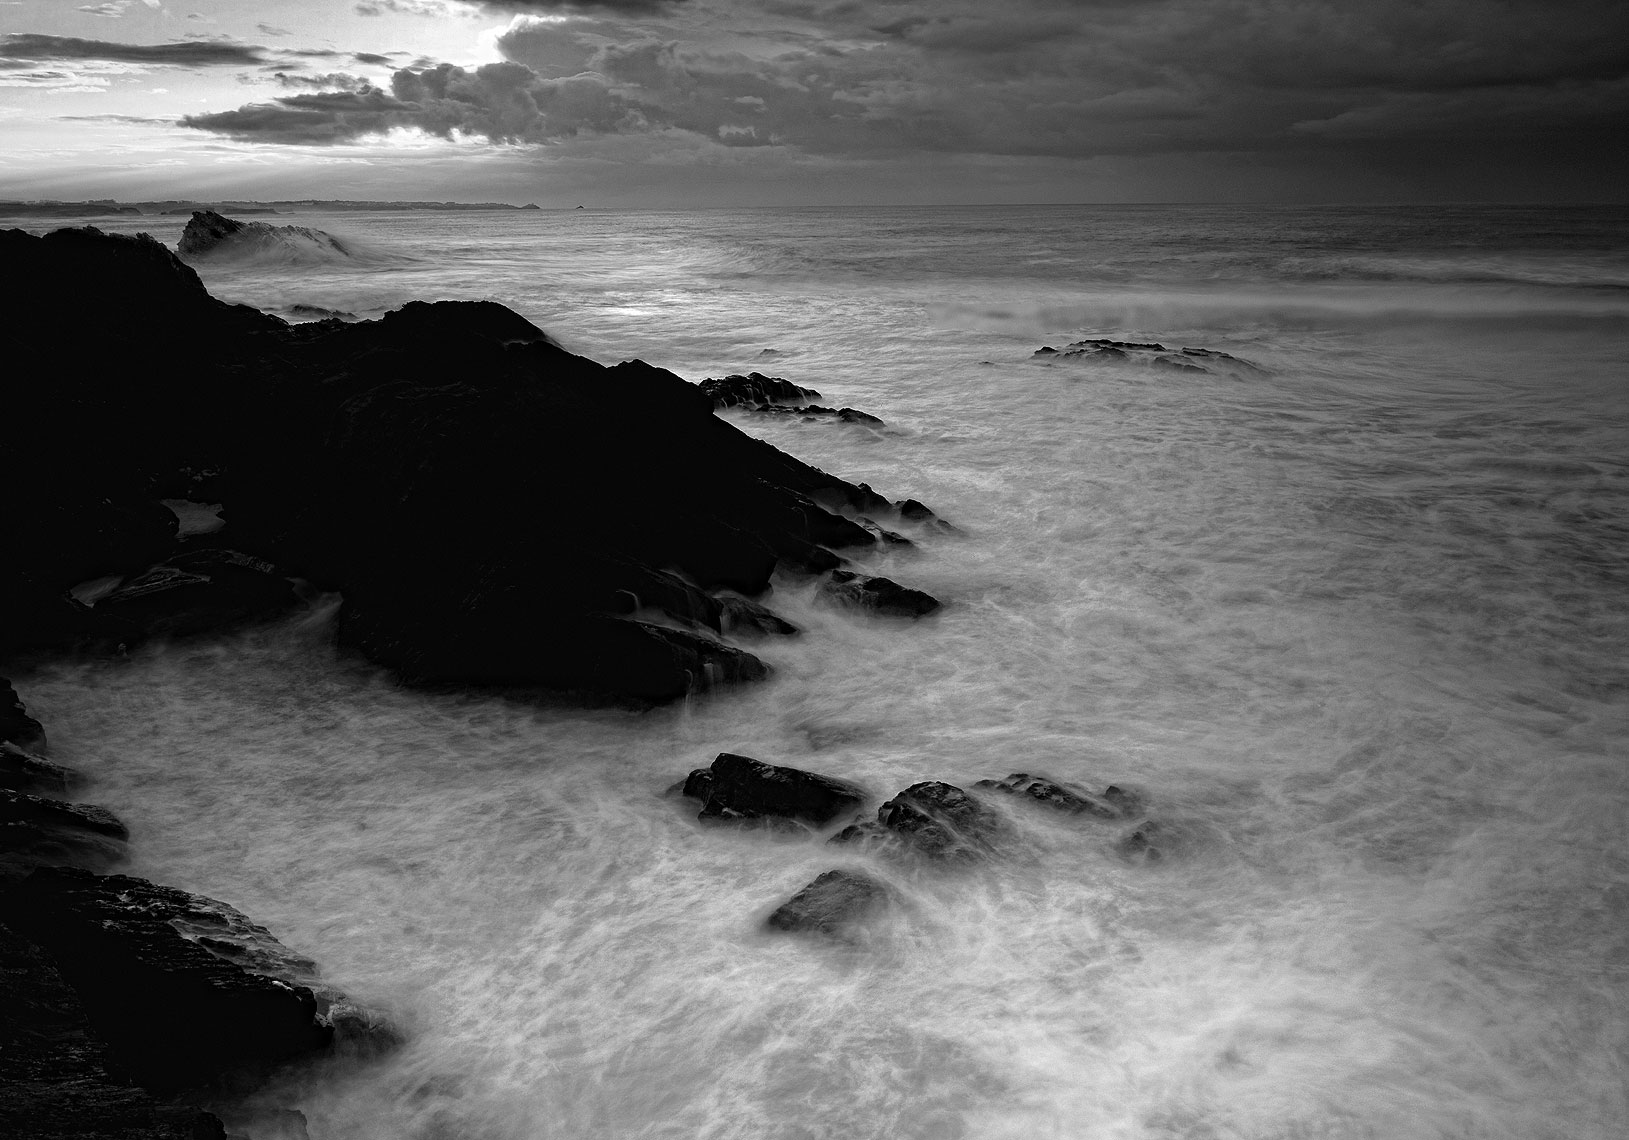 13-rocks-swirling-sea-sunset--bw-